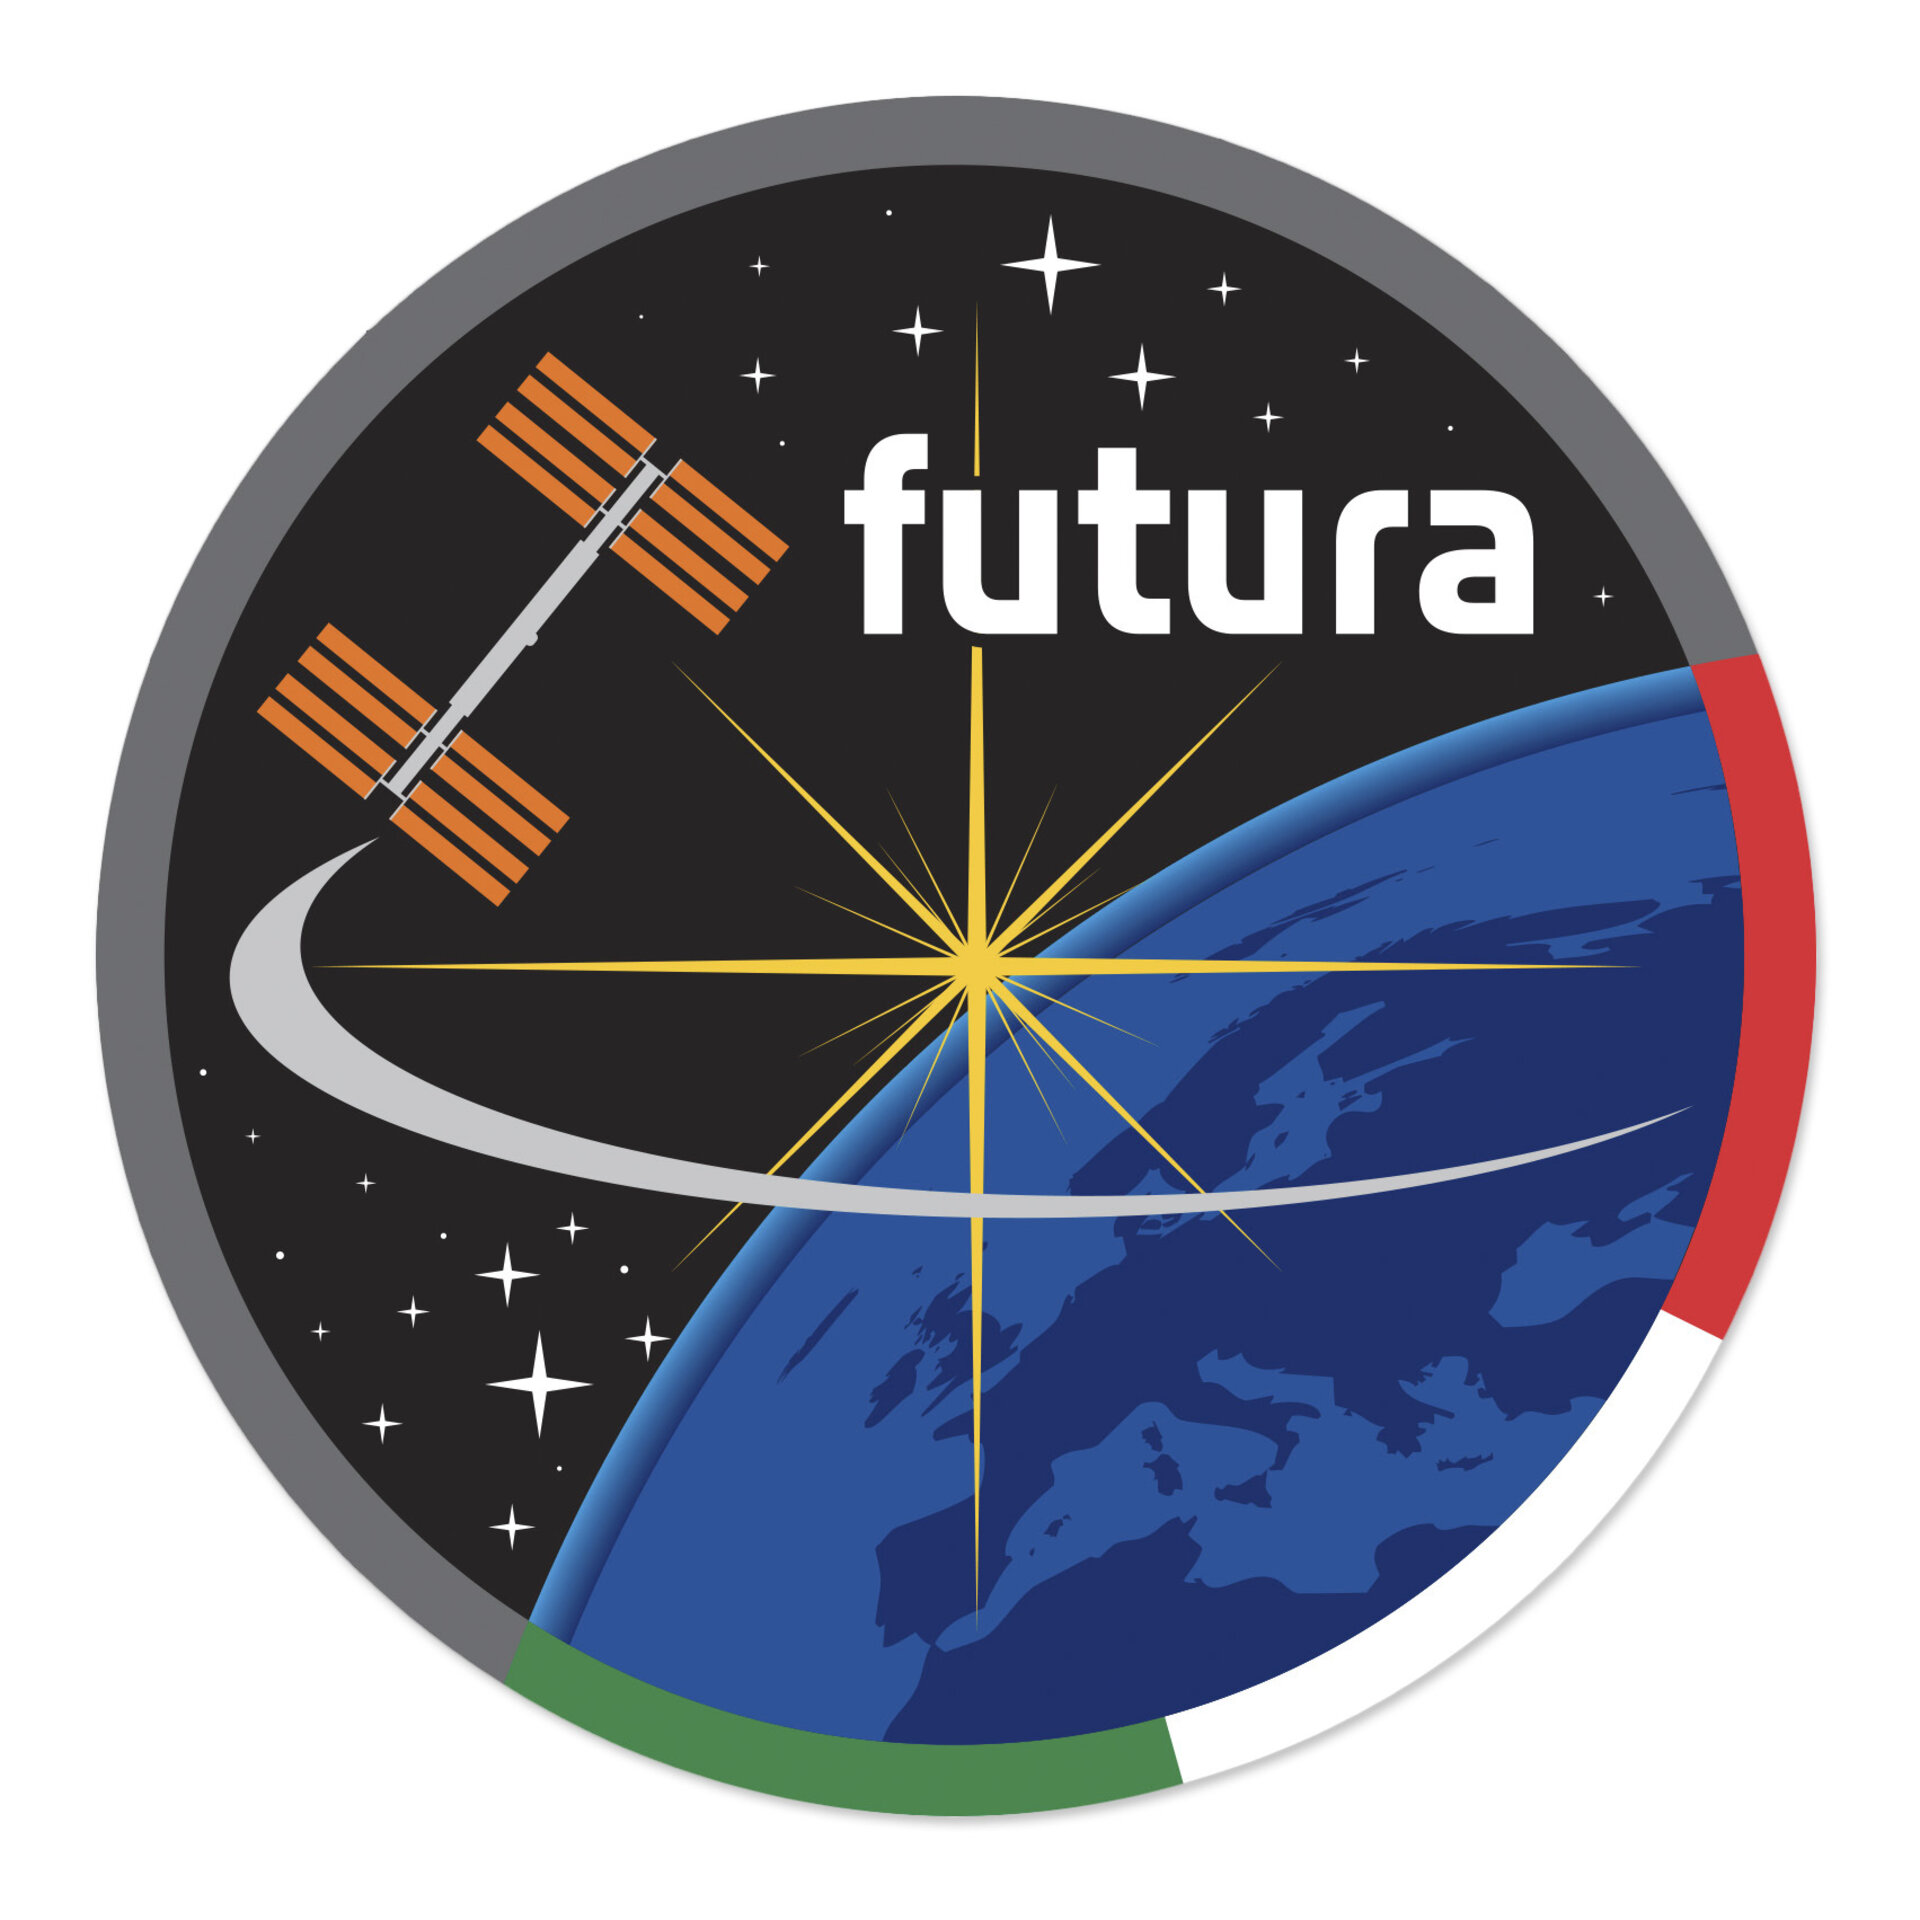 Soyuz TMA-15M, Futura mission patch, 2014